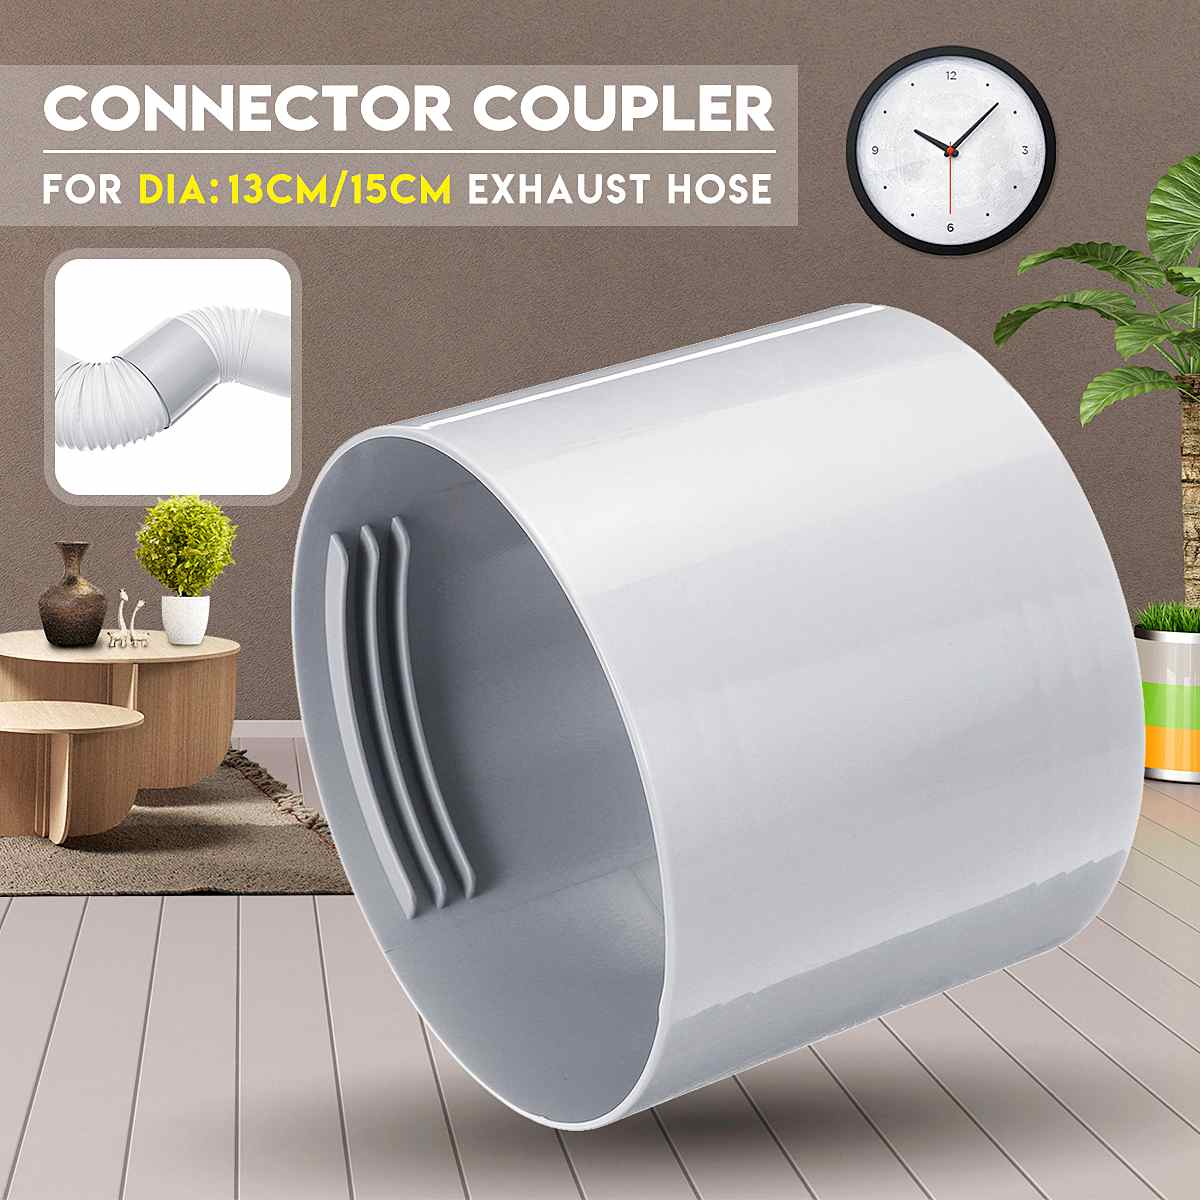 "Portable Air Conditioner 130mm / 150mm 5"" / 6"" Exhaust Hose Pipe Connector Coupler Air Conditioner Accessories Parts"